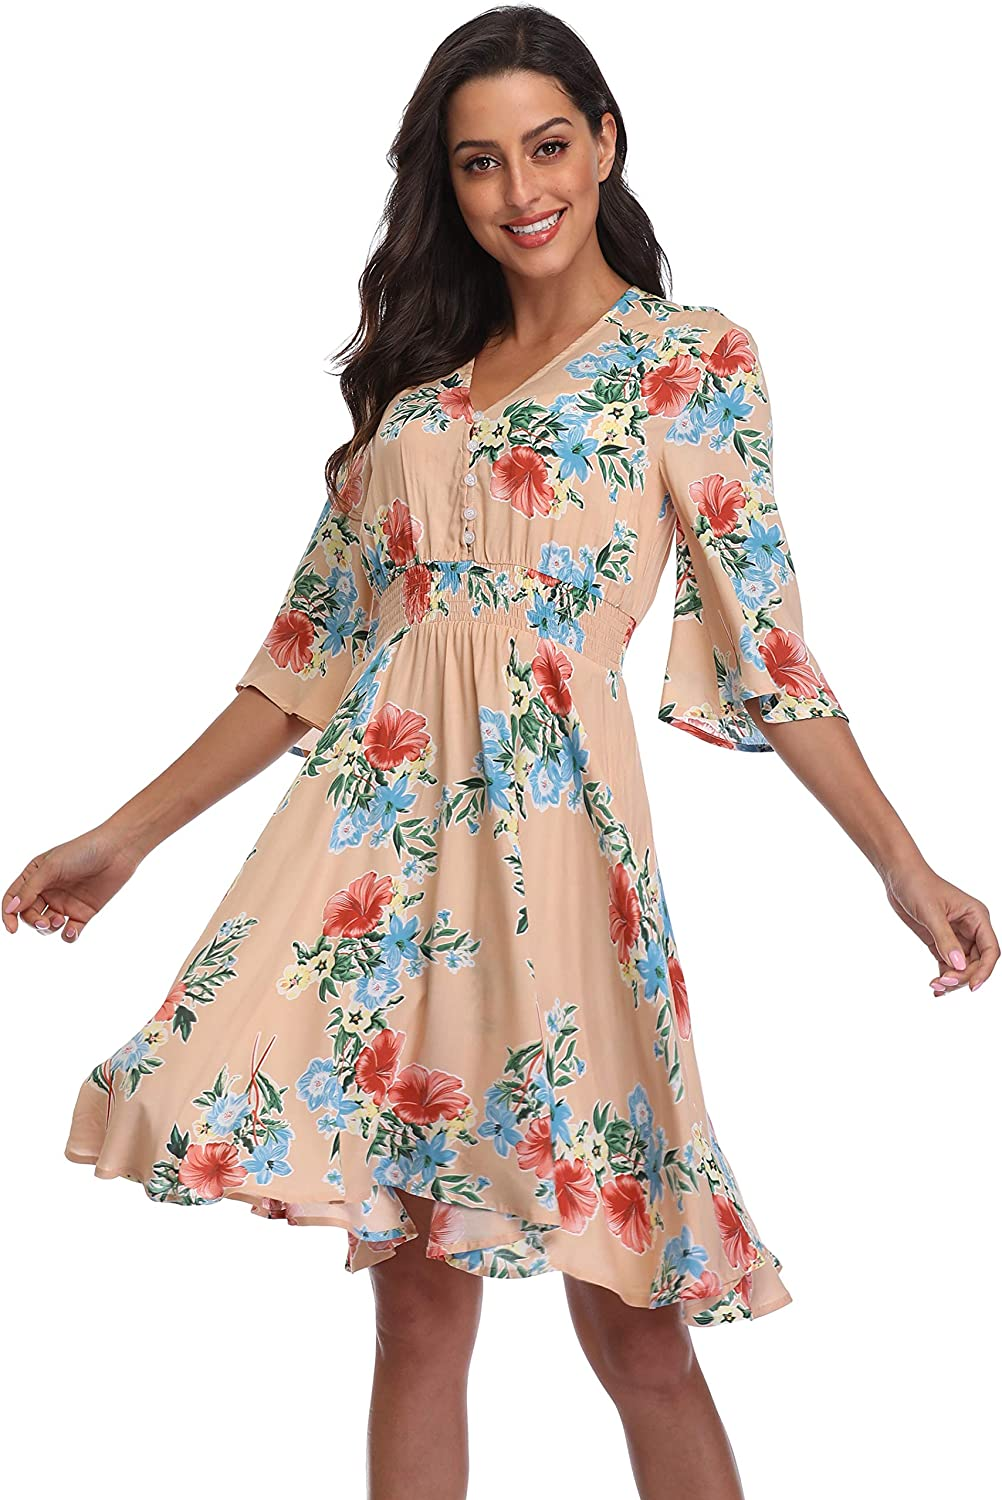 BestWendding Gorgeous Ranking TOP19 Summer Floral Flowy Party Dresses Women Casual Butt